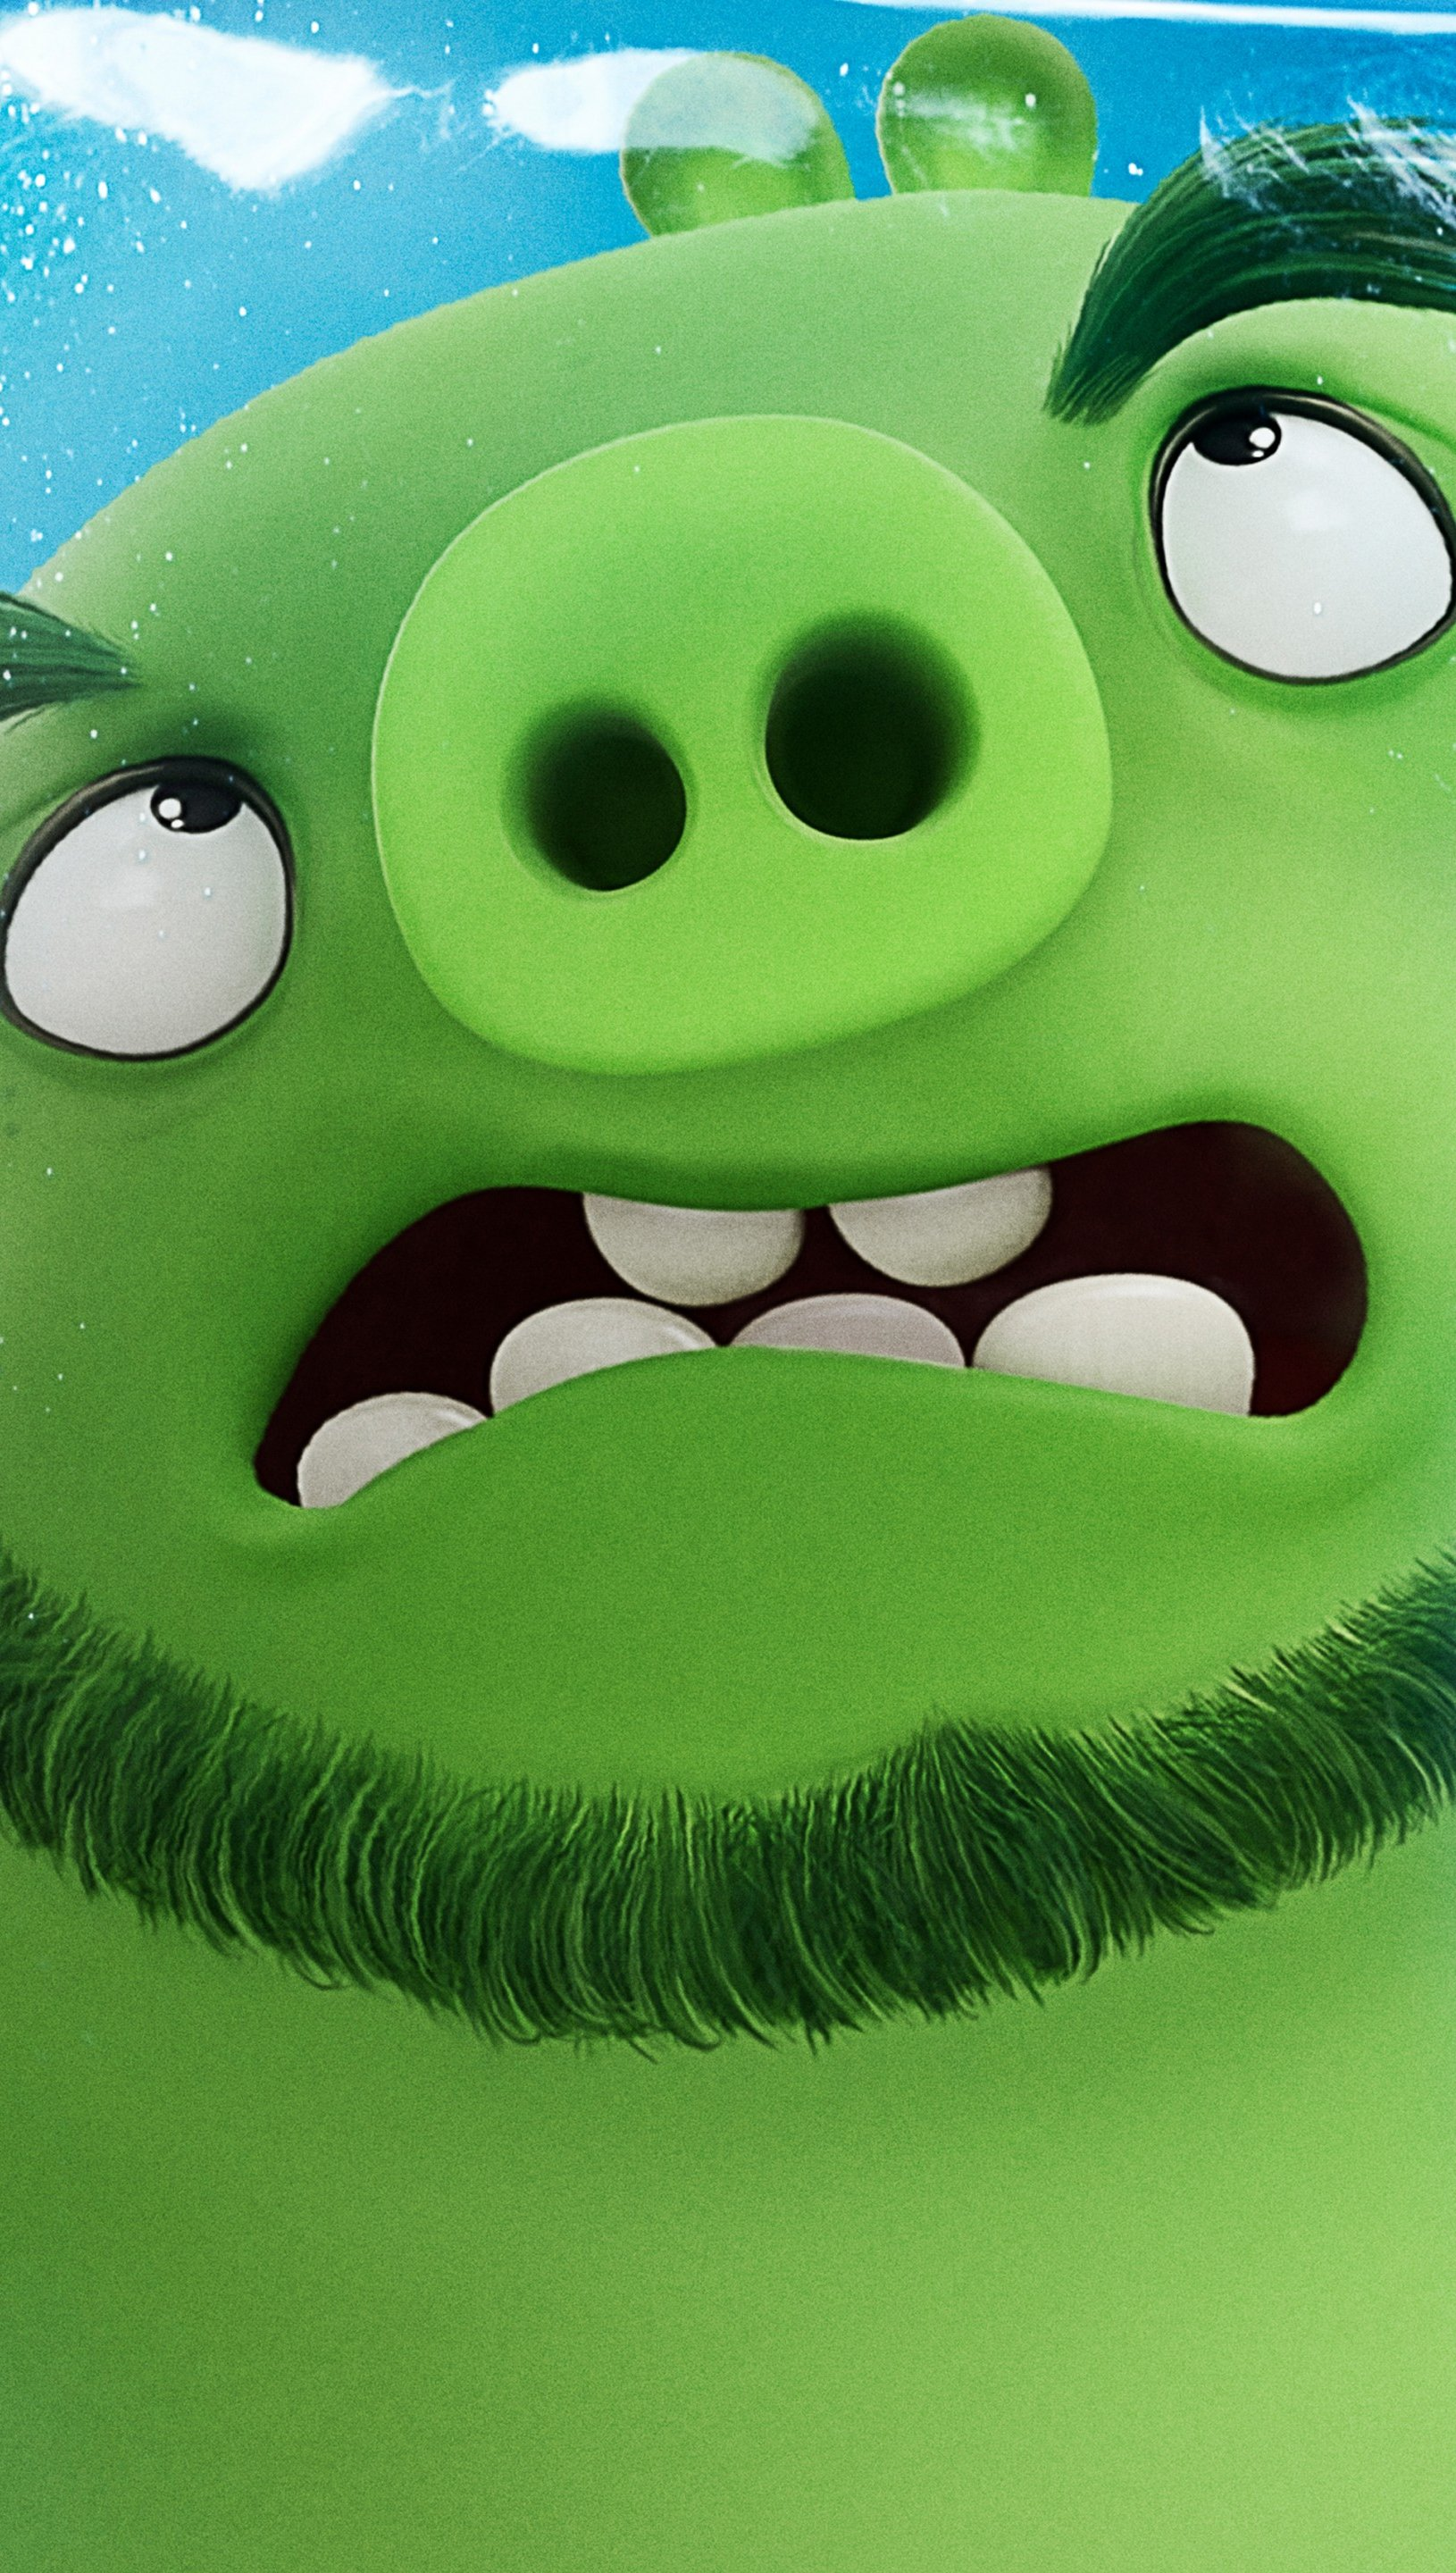 Wallpaper The Angry Birds Movie 2 Vertical